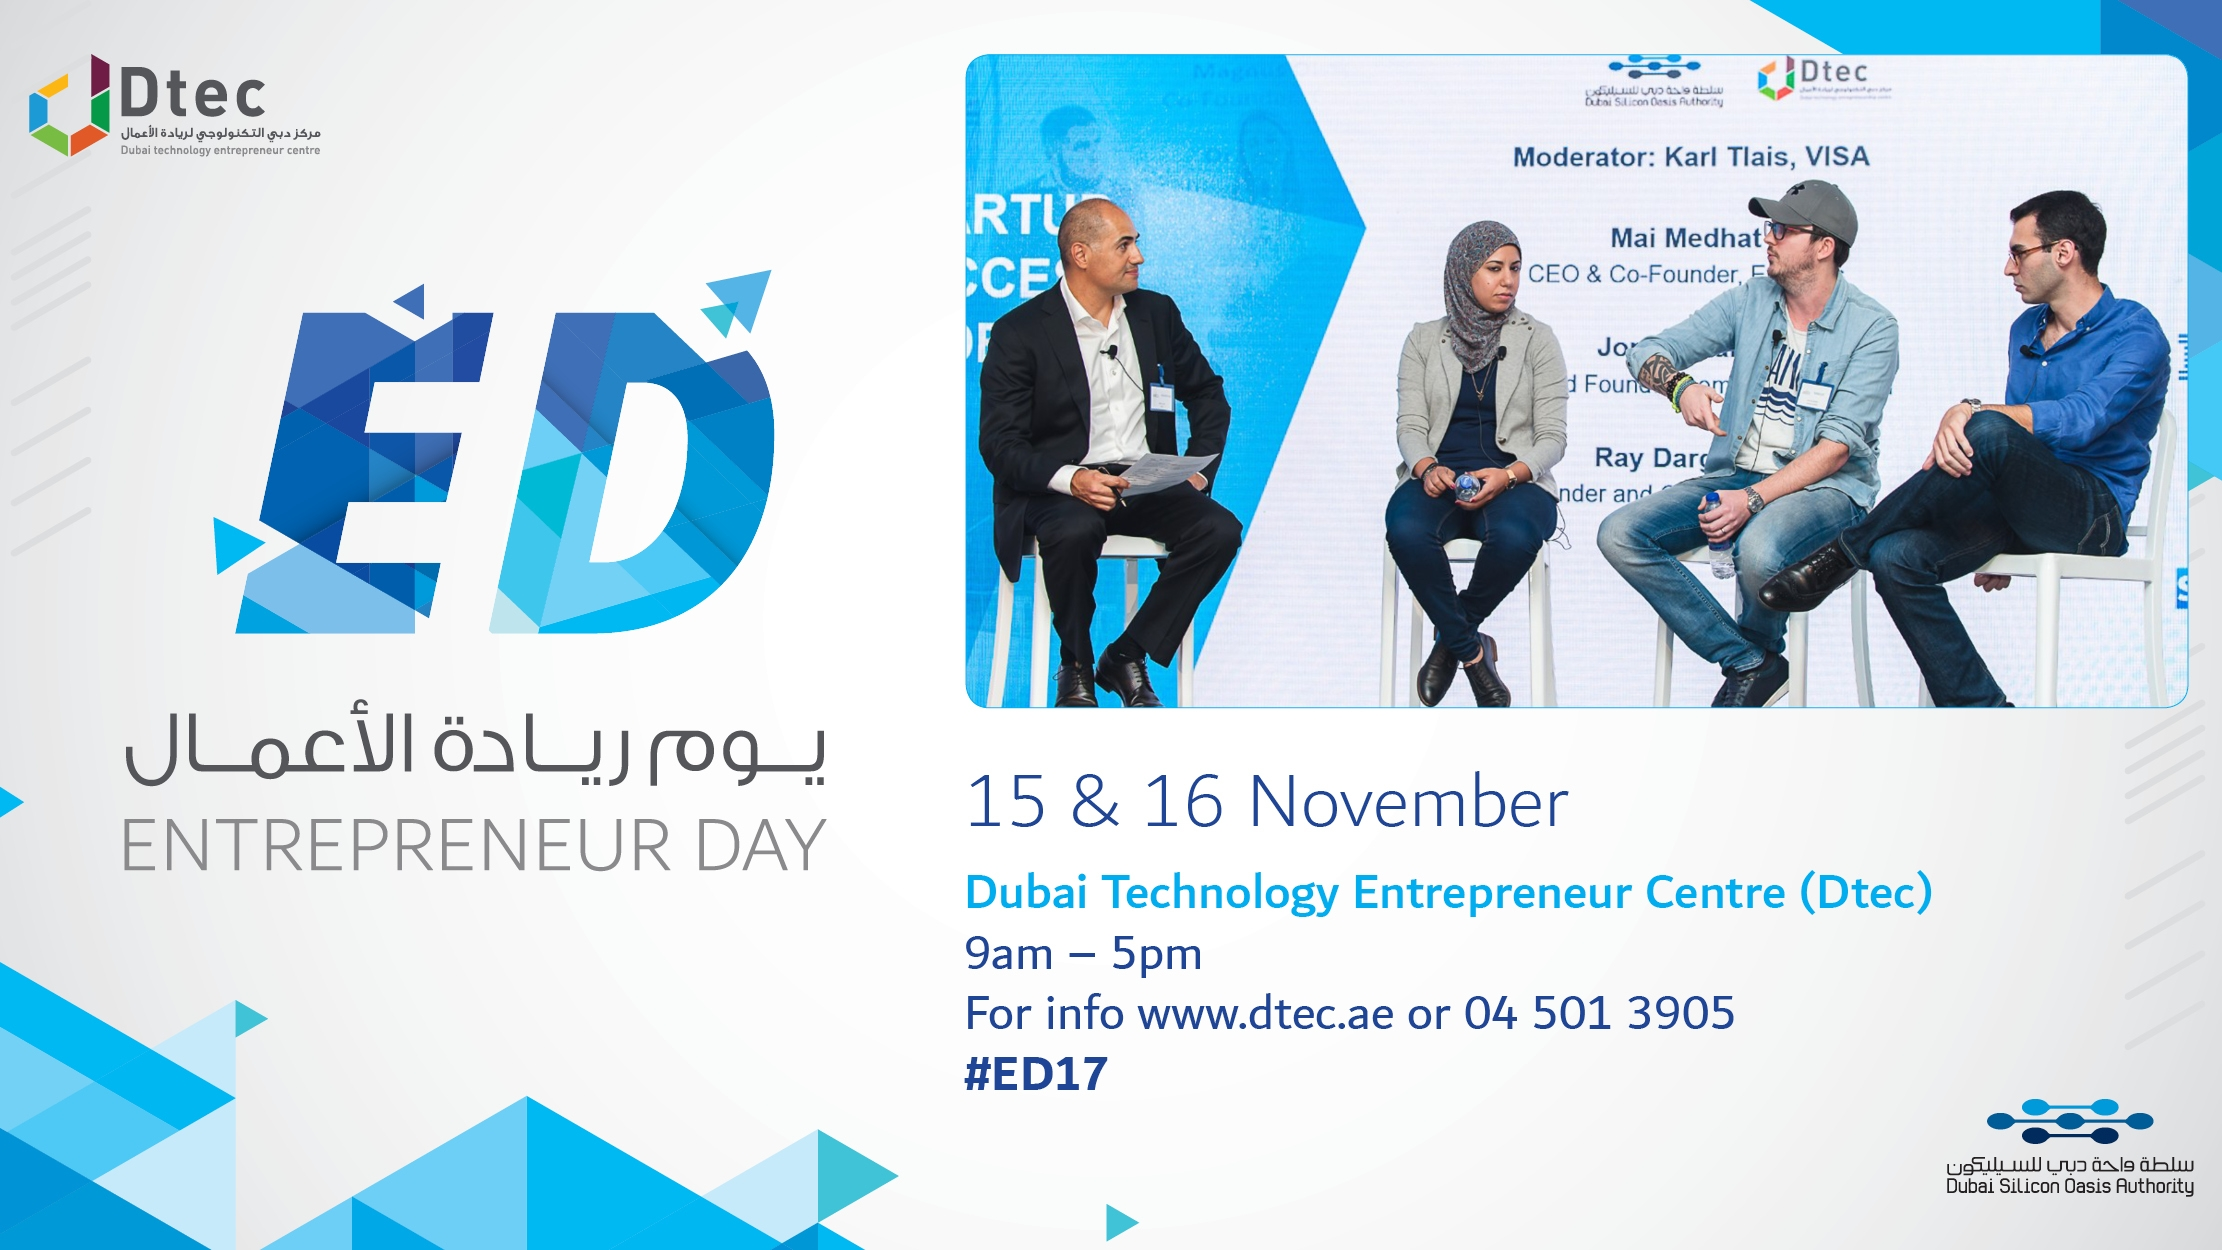 Dtec Entrepreneur Day 2017 - Excited to be a partner of this celebration of entrepreneurship. Apply now to join us.